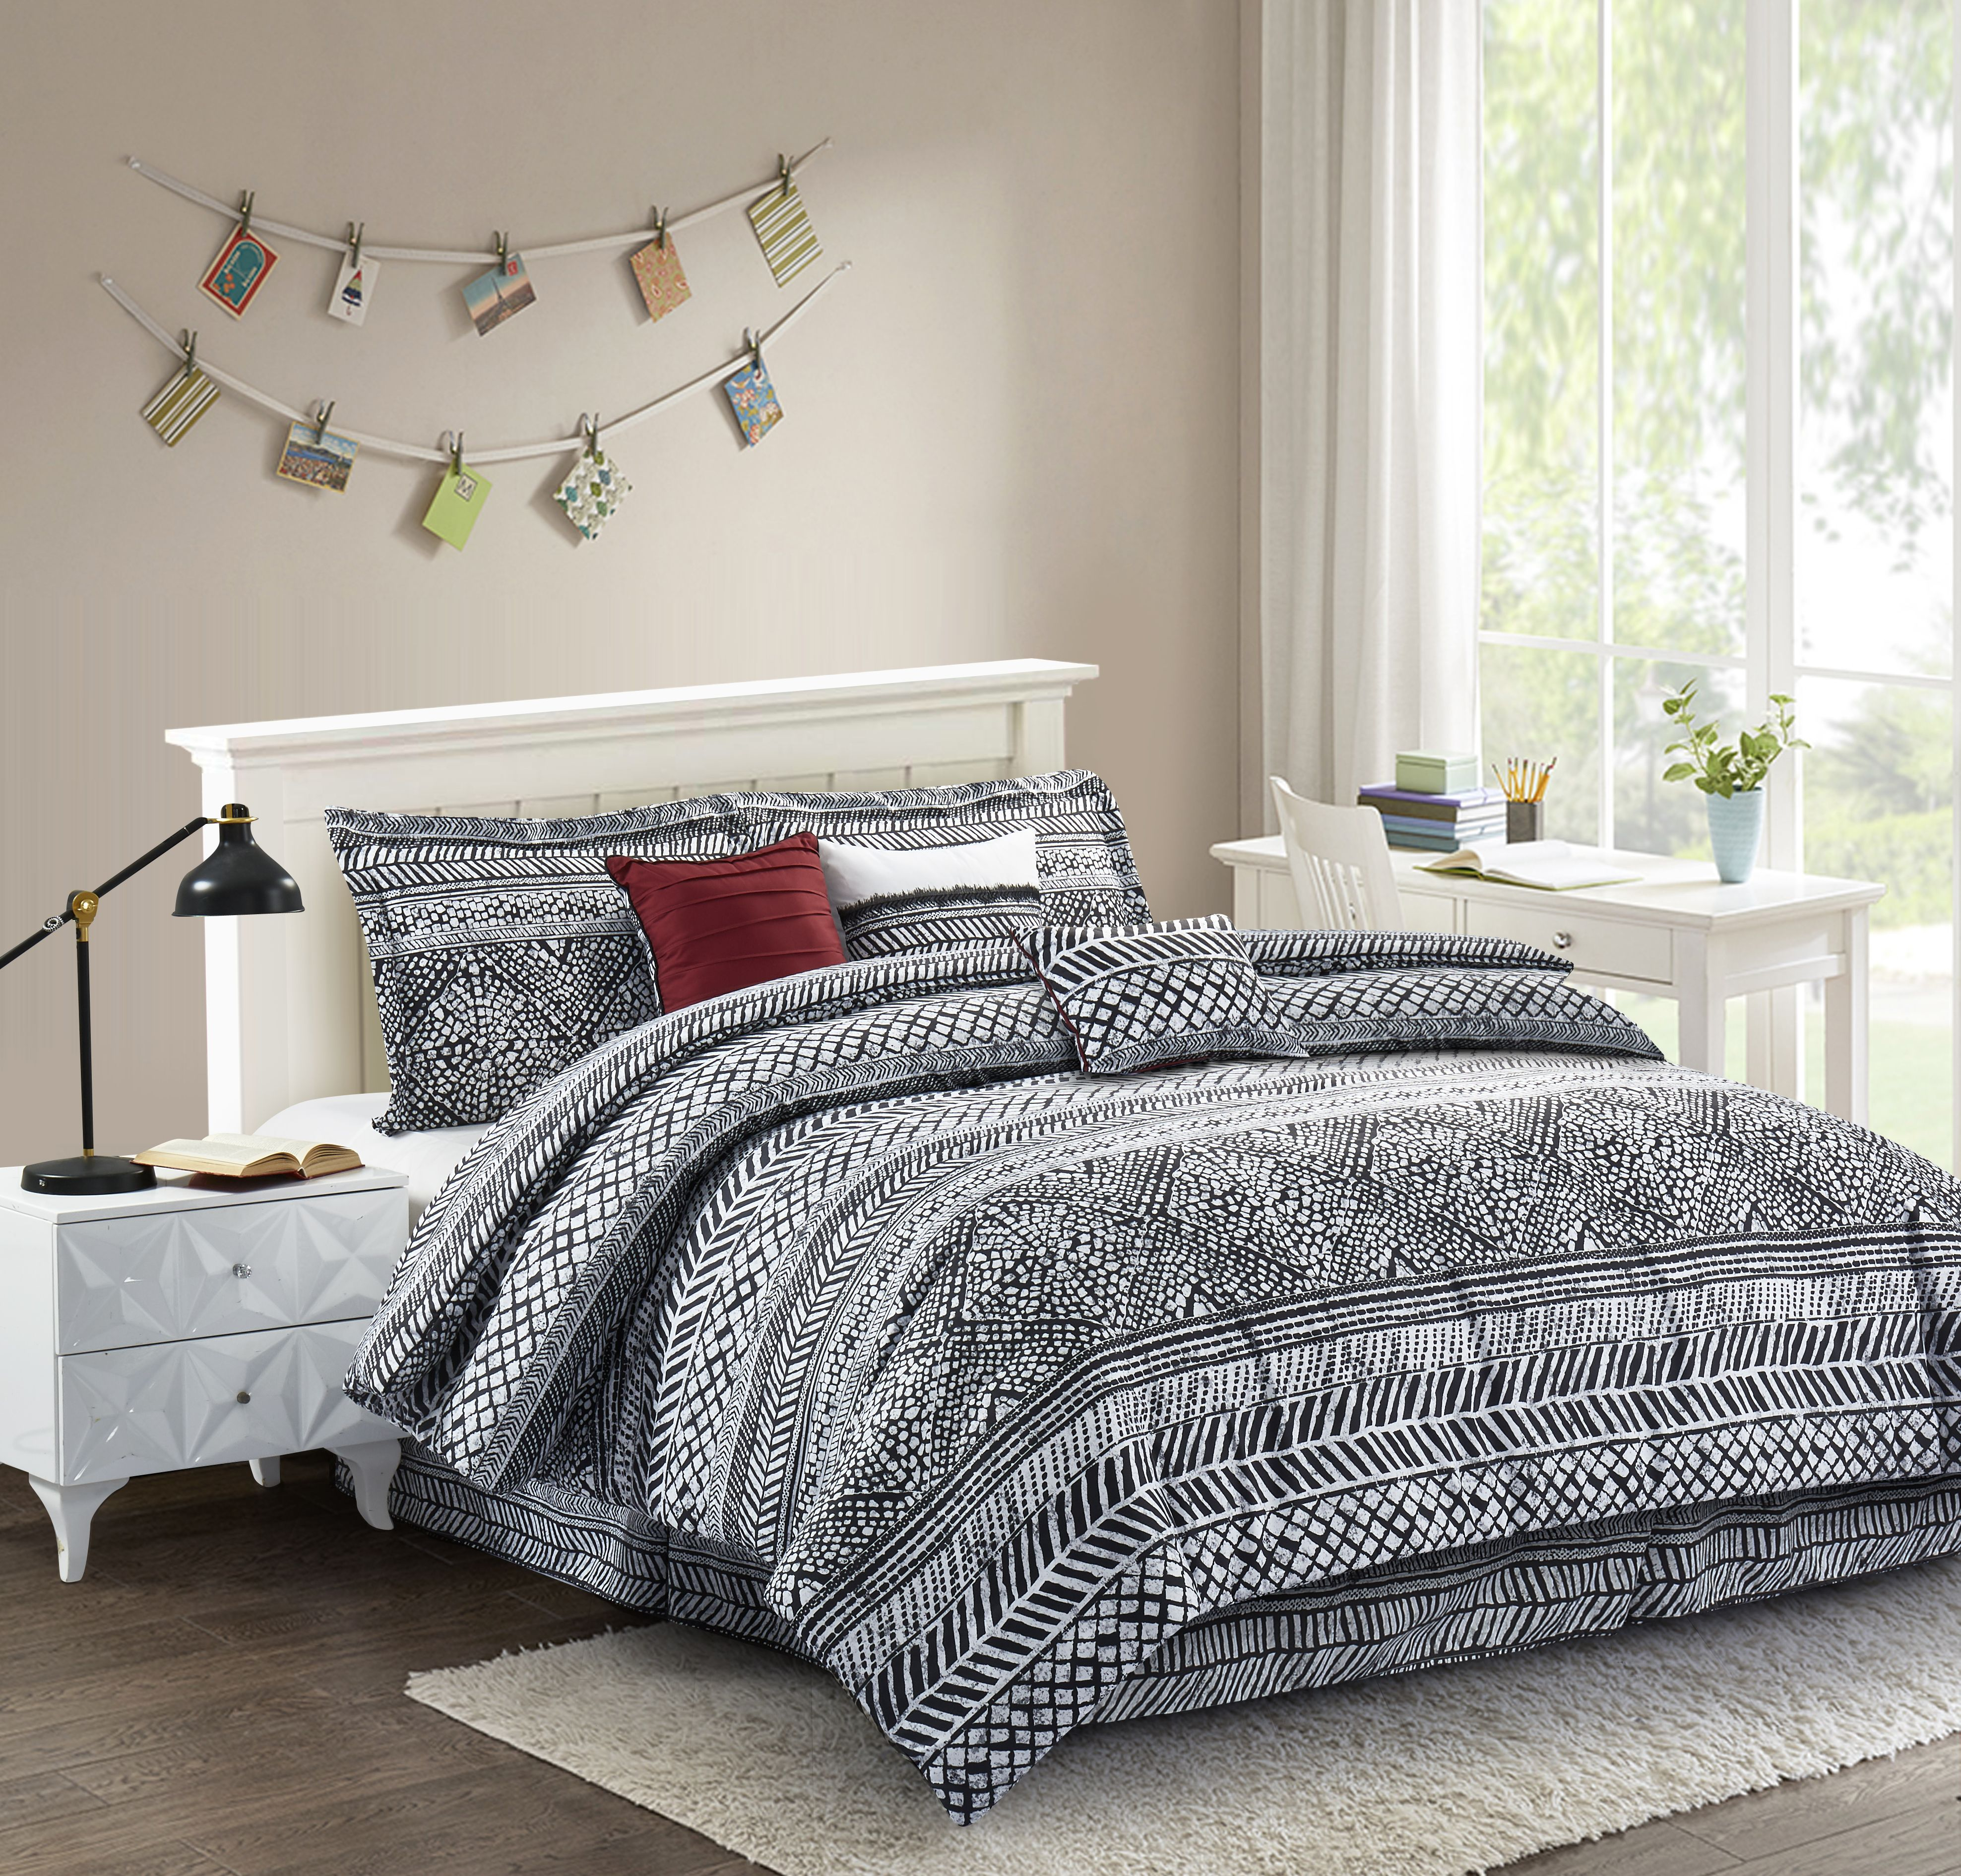 Black and white trend is still in! Mosaic bed addresses